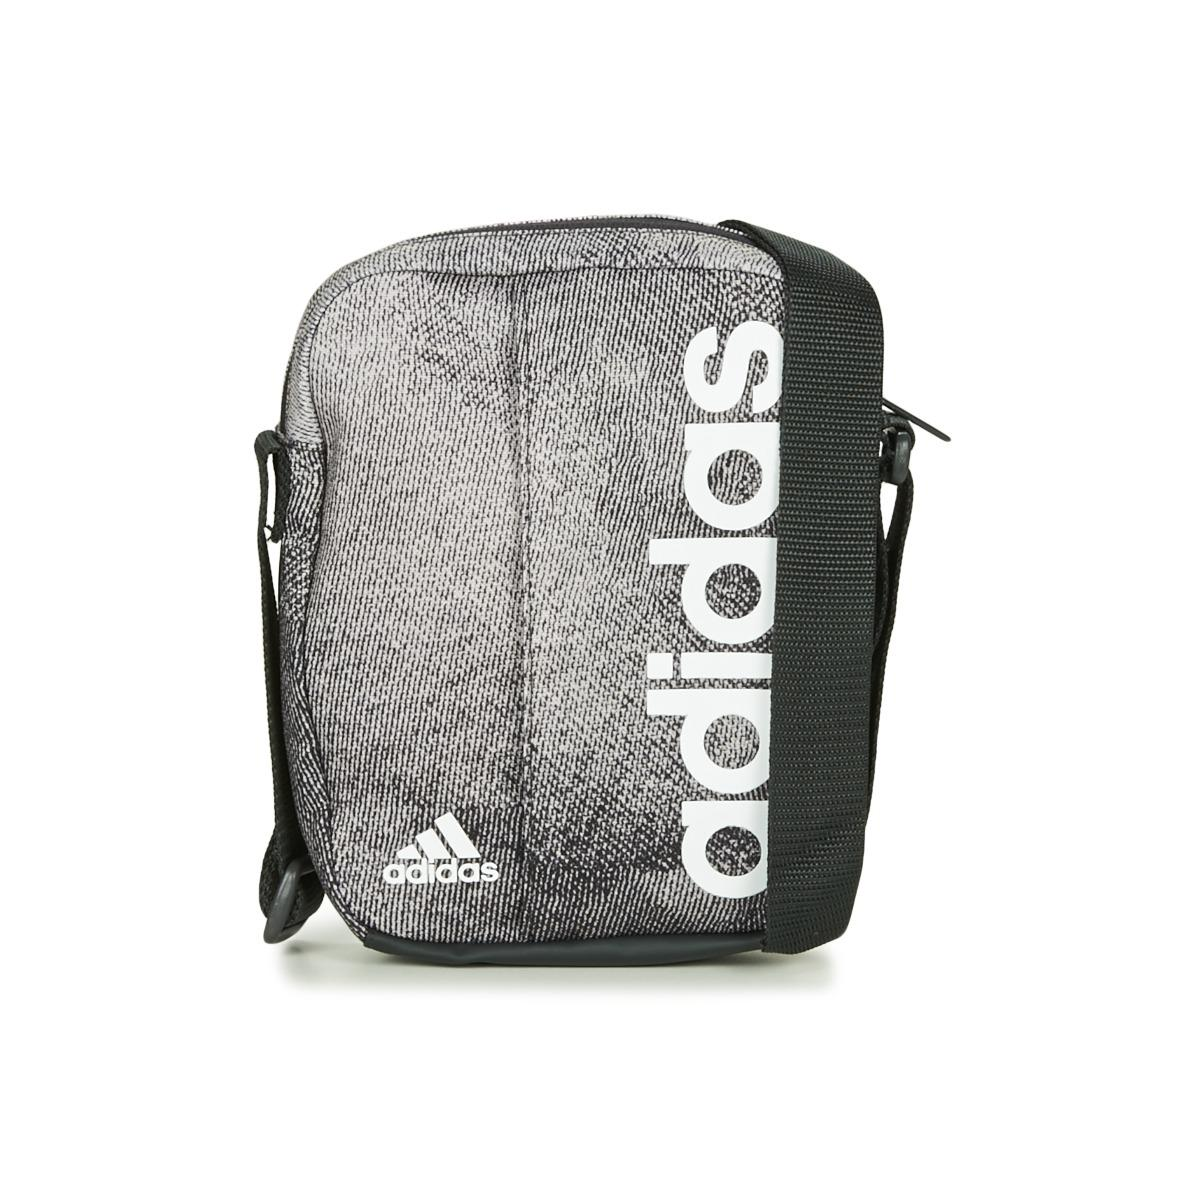 37de0147b338 adidas Linear Organizer Men s Pouch In Grey in Gray for Men - Lyst